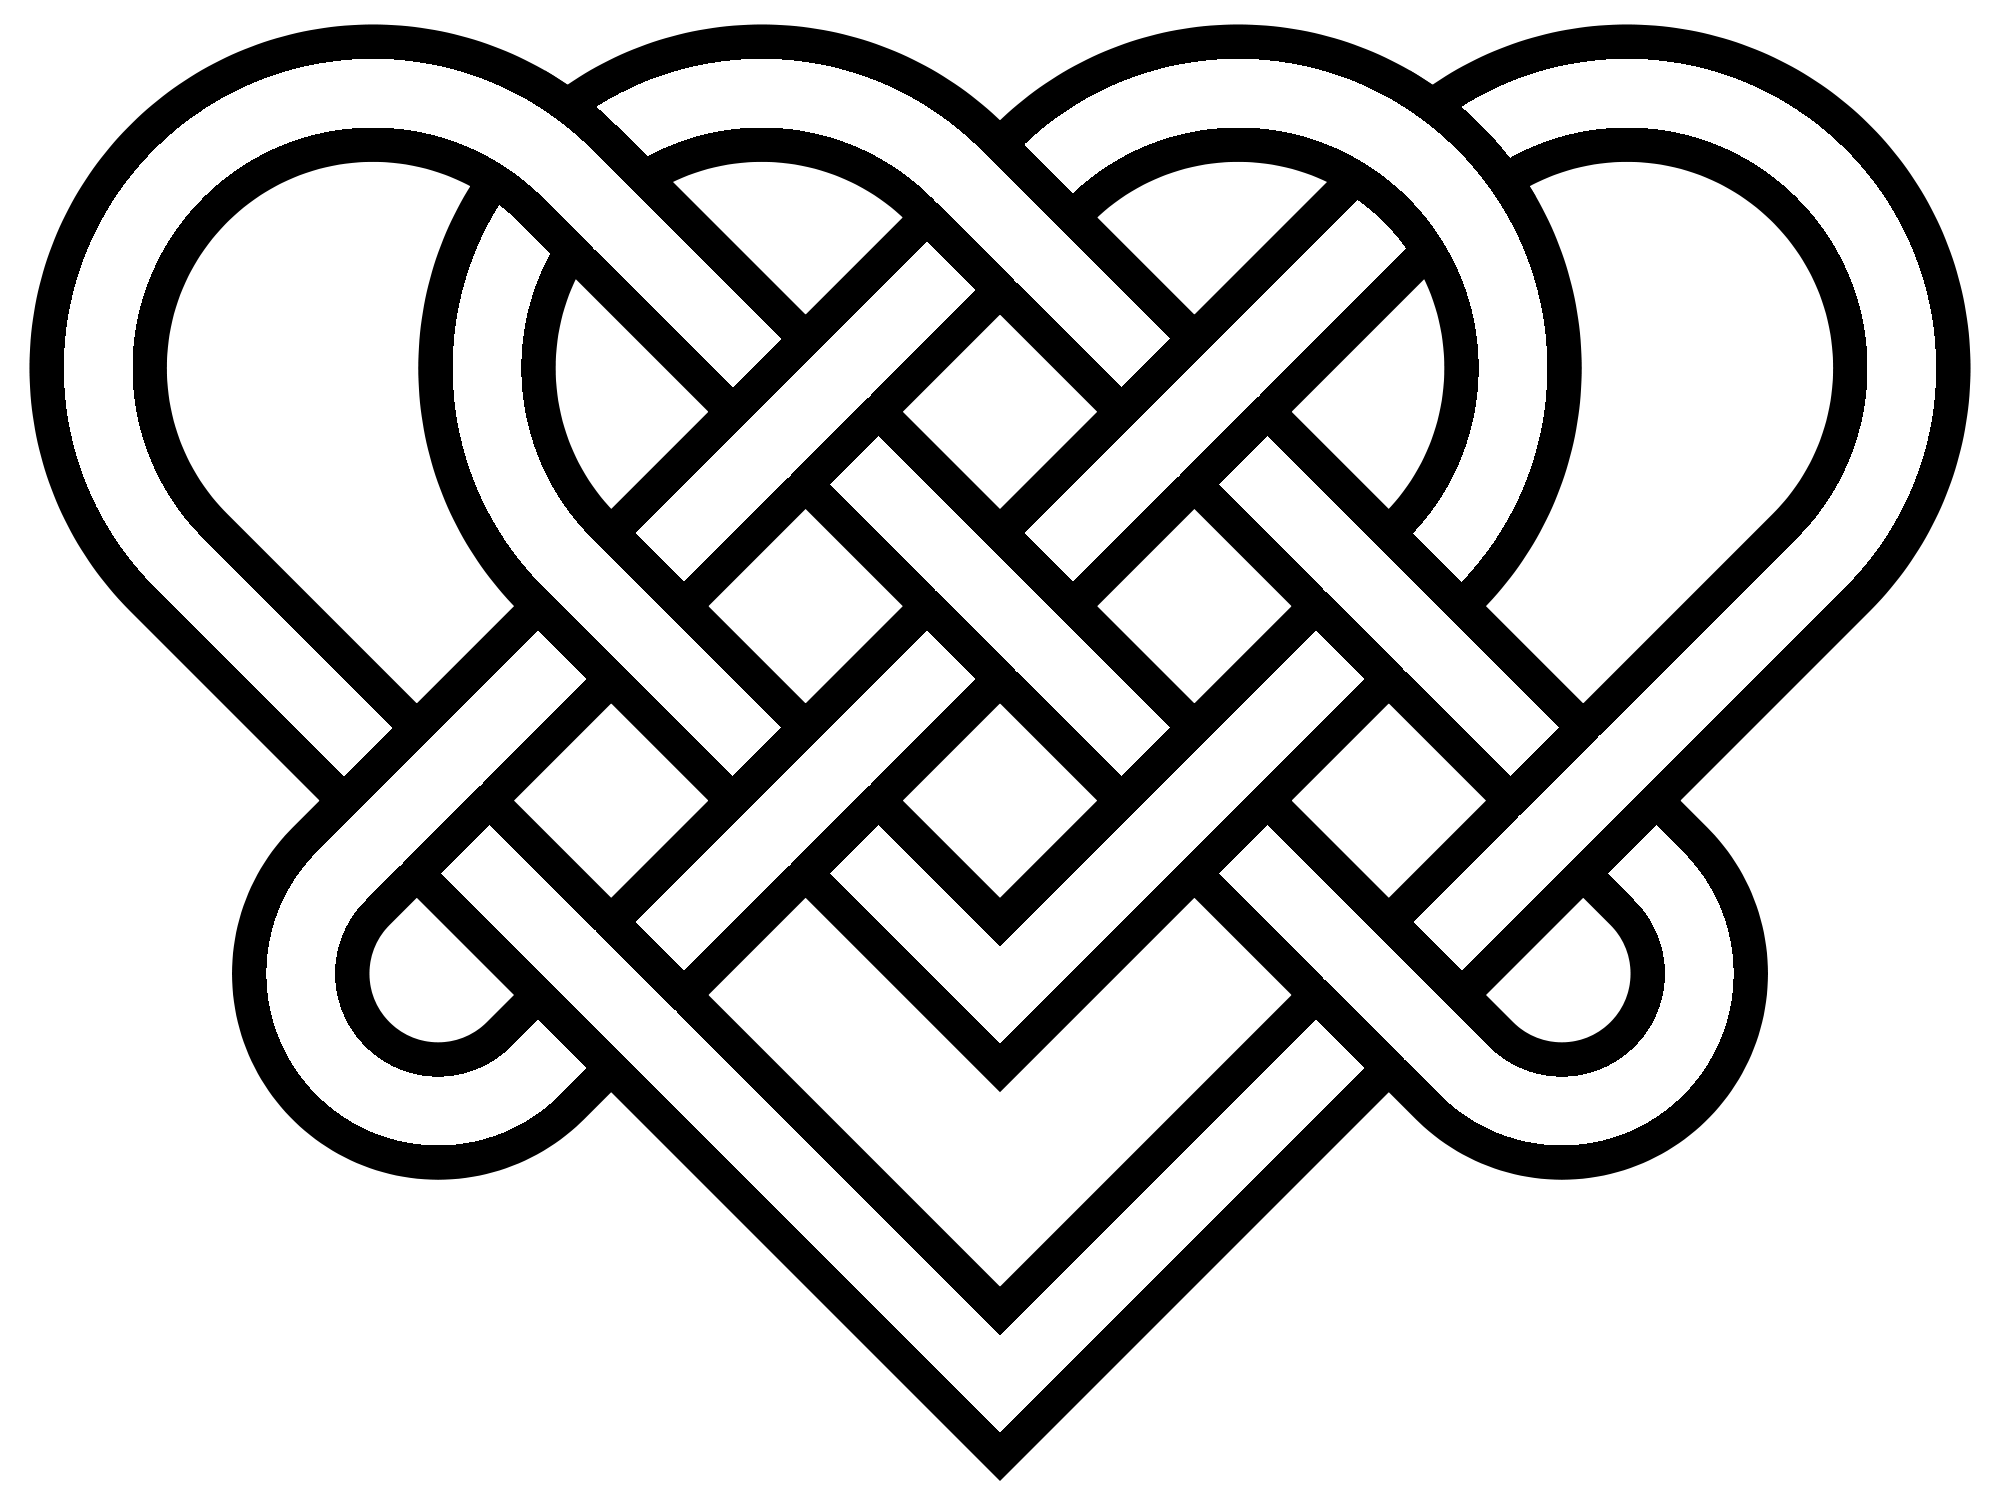 Celtic heart clipart banner free library 28+ Collection of Free Celtic Knot Clipart | High quality, free ... banner free library